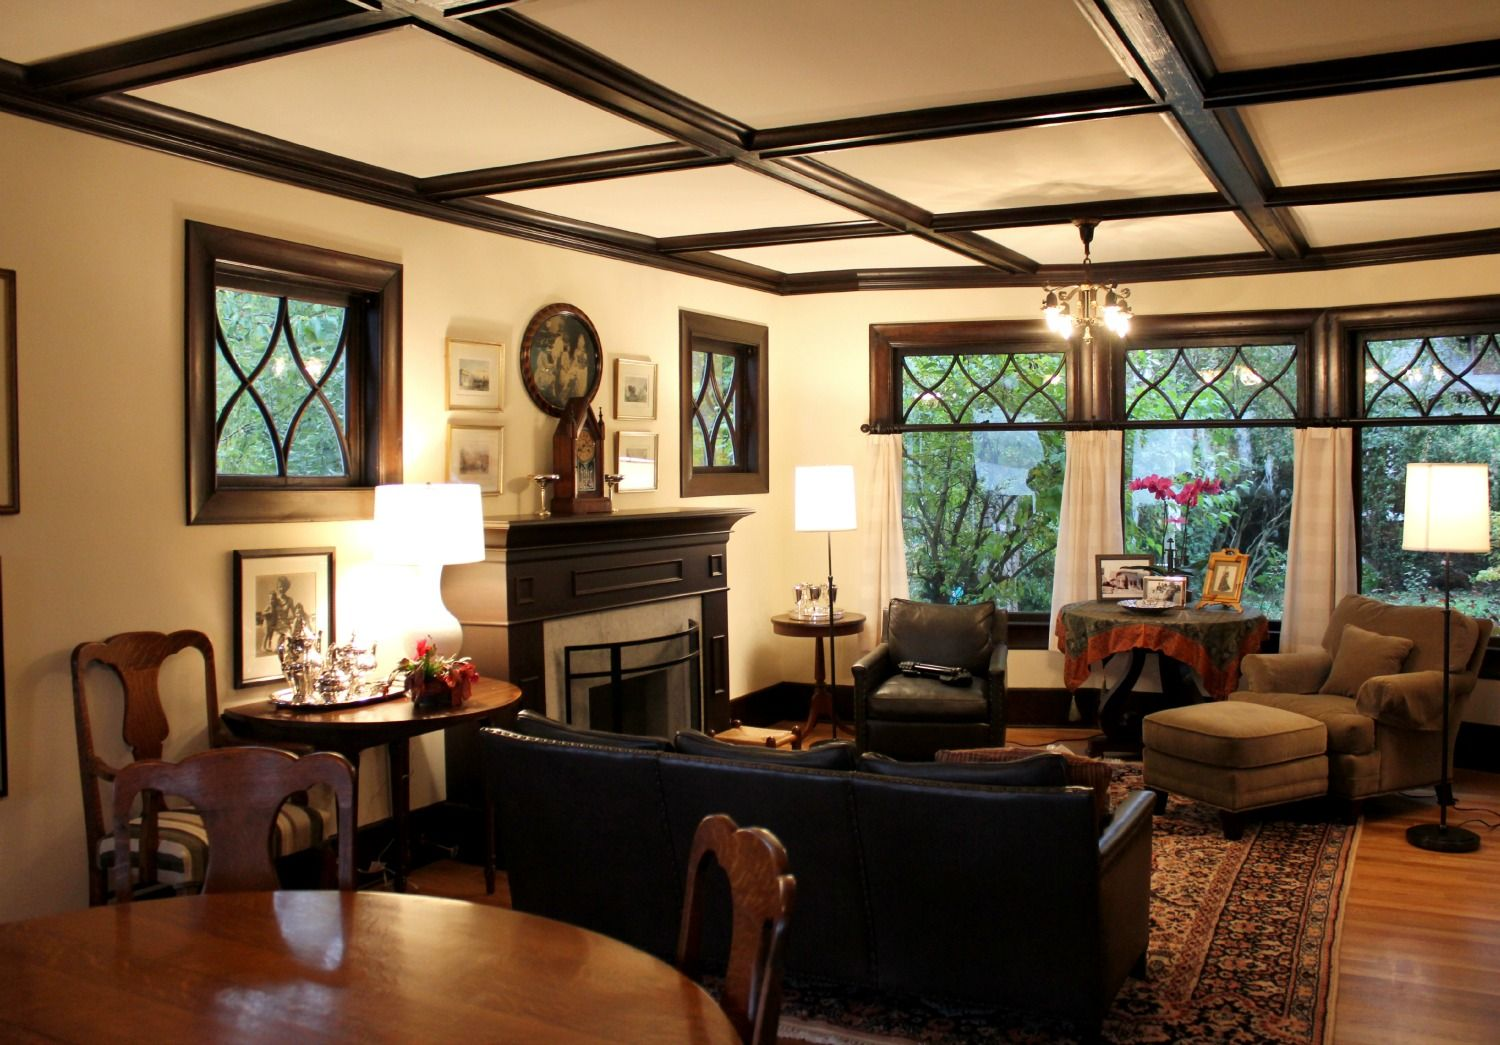 Contemporary Craftsman Interiors Google Search Craftsman Interior Design Pinterest